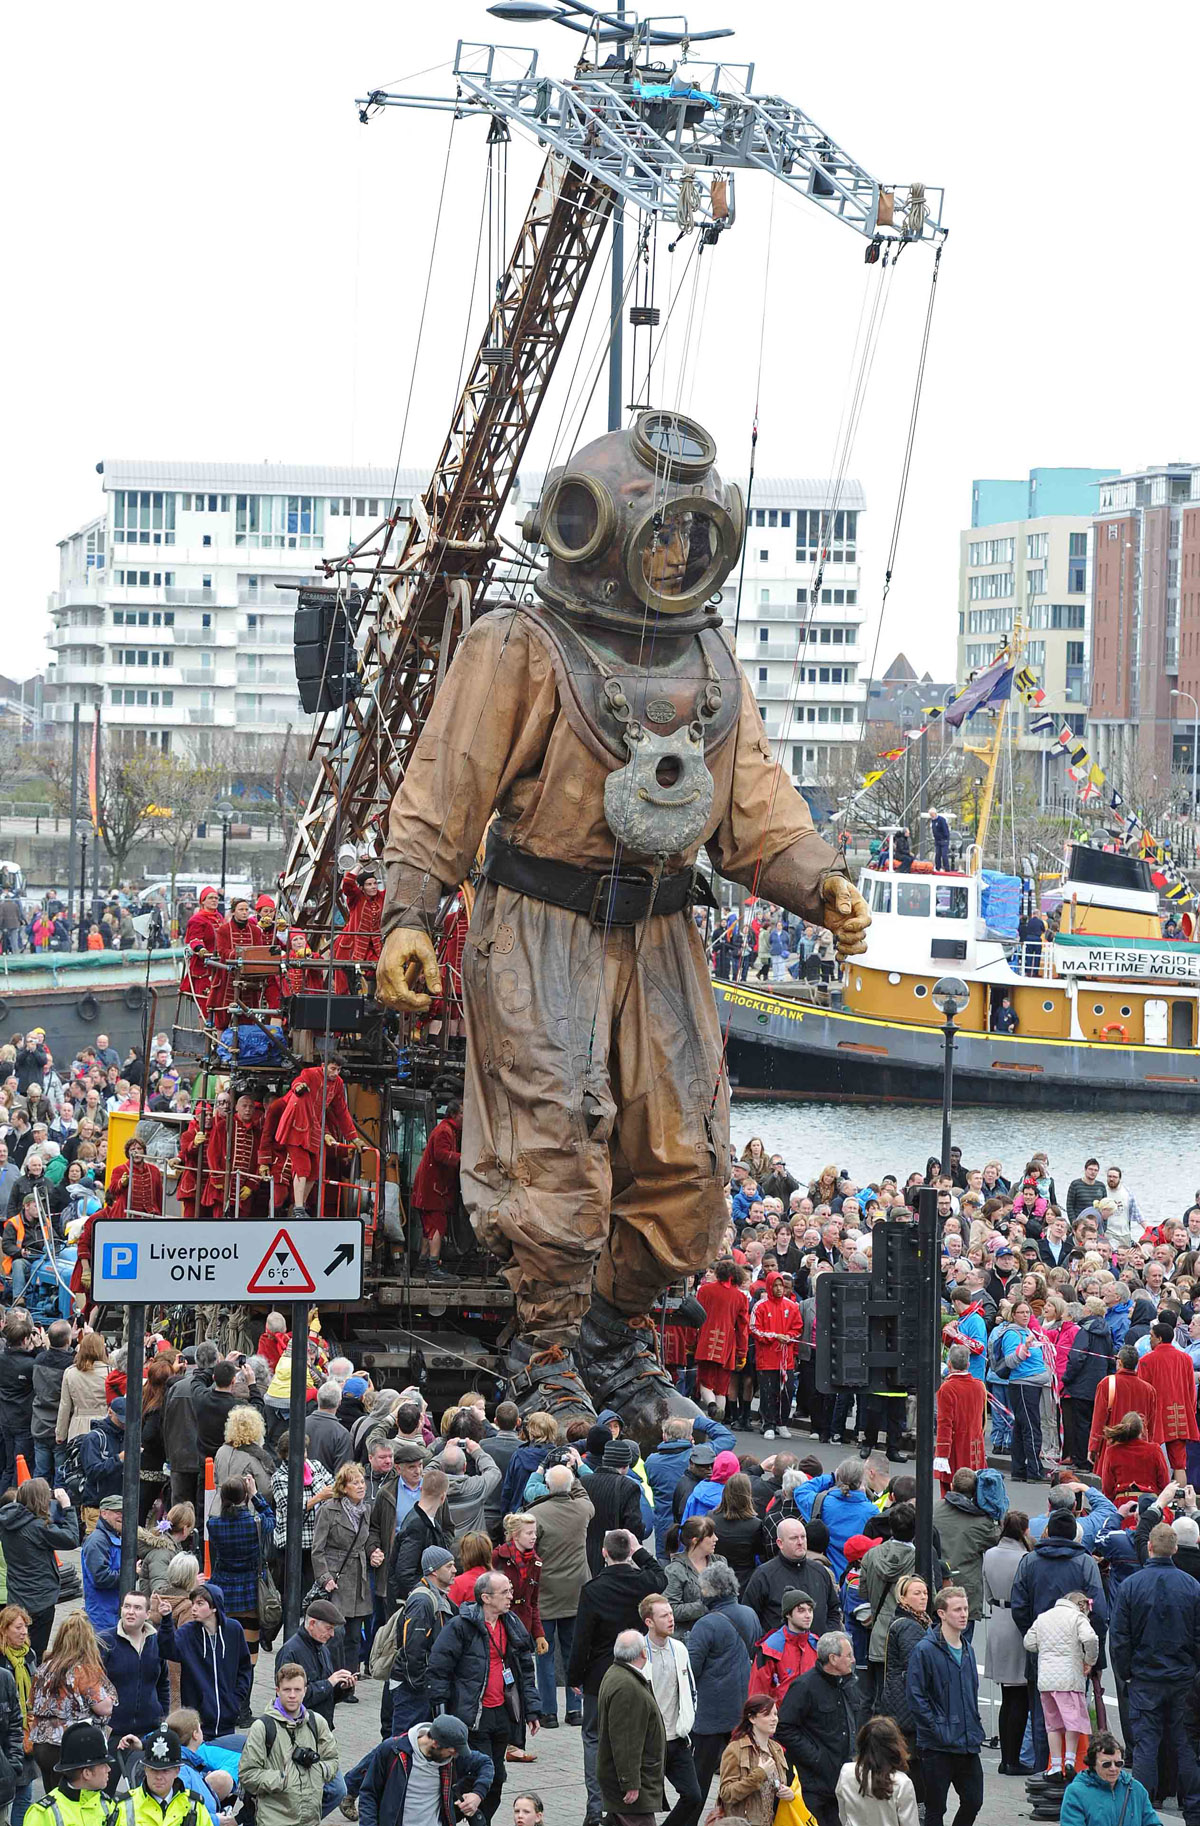 The giants wow the crowds in 2012. Picture: Paul Heaps